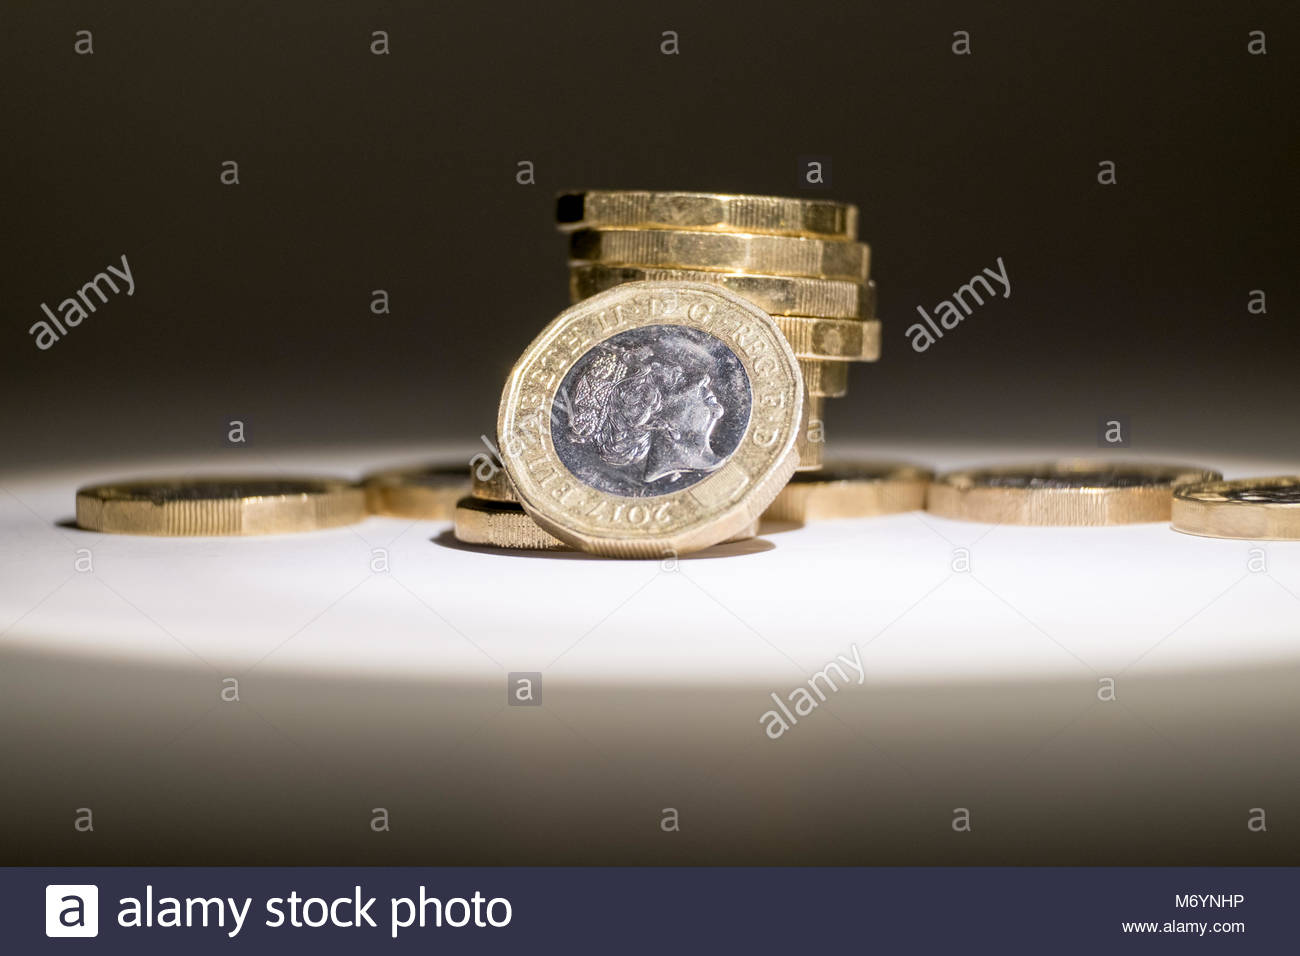 British currency. New version of £1 coin. UK. - Stock Image